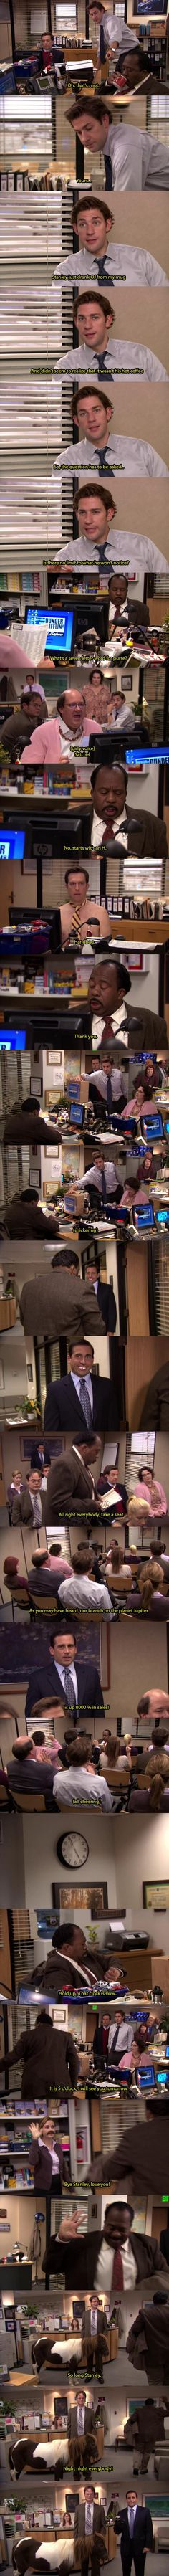 The Office: What does Stanley notice?